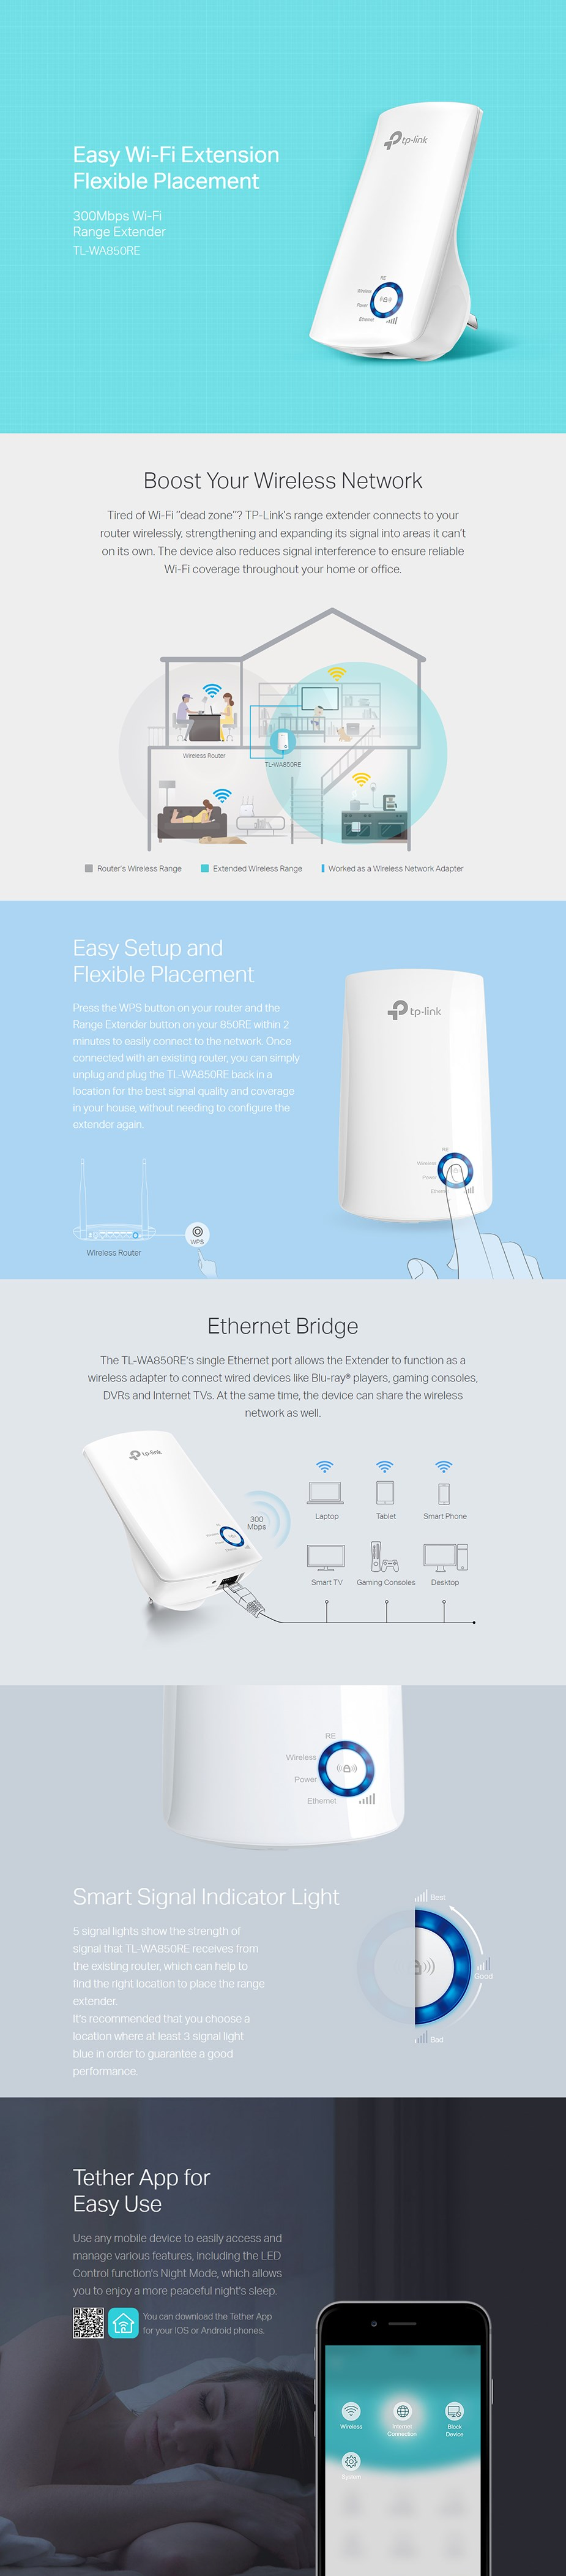 TP-Link TL-WA850RE 300Mbps Universal WiFi Range Extender - Overview 1